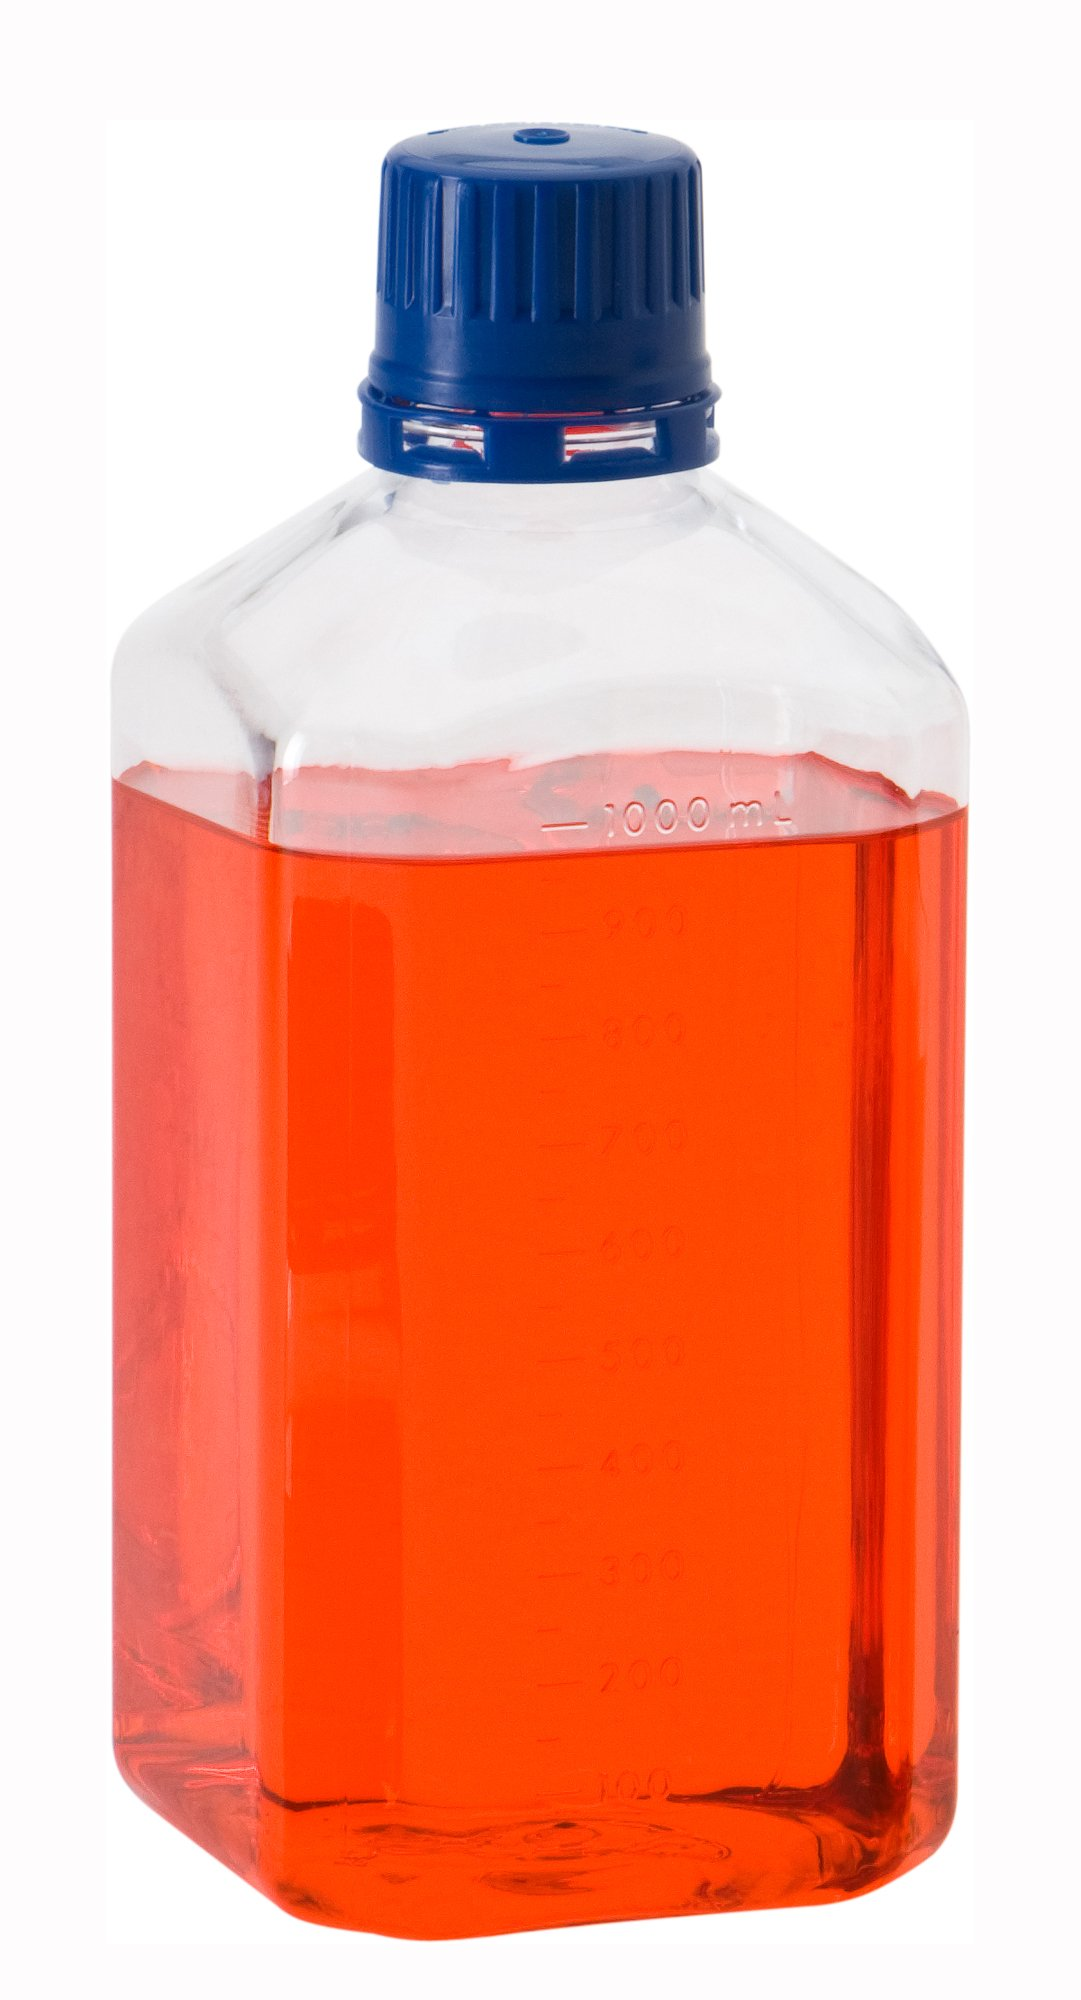 Chemglass CLS-1150-0060 PETG Square 60mL Sterile Graduated Media Bottle, with 20-415 GPI Thread (Pack of 24)